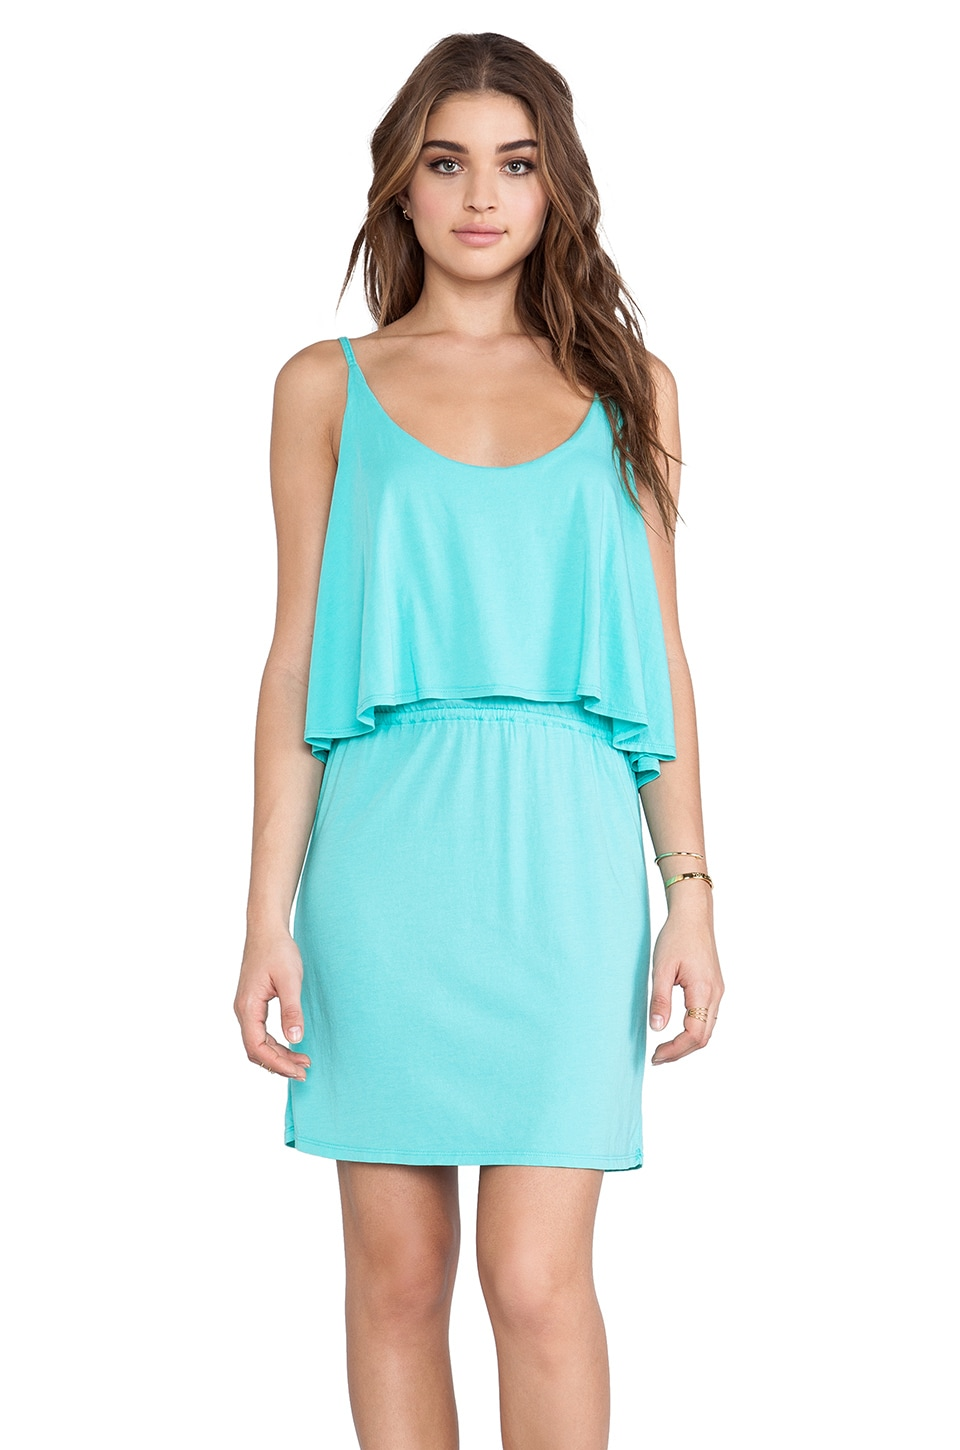 Bobi Modal Jersey Tank Mini Dress in Aqua